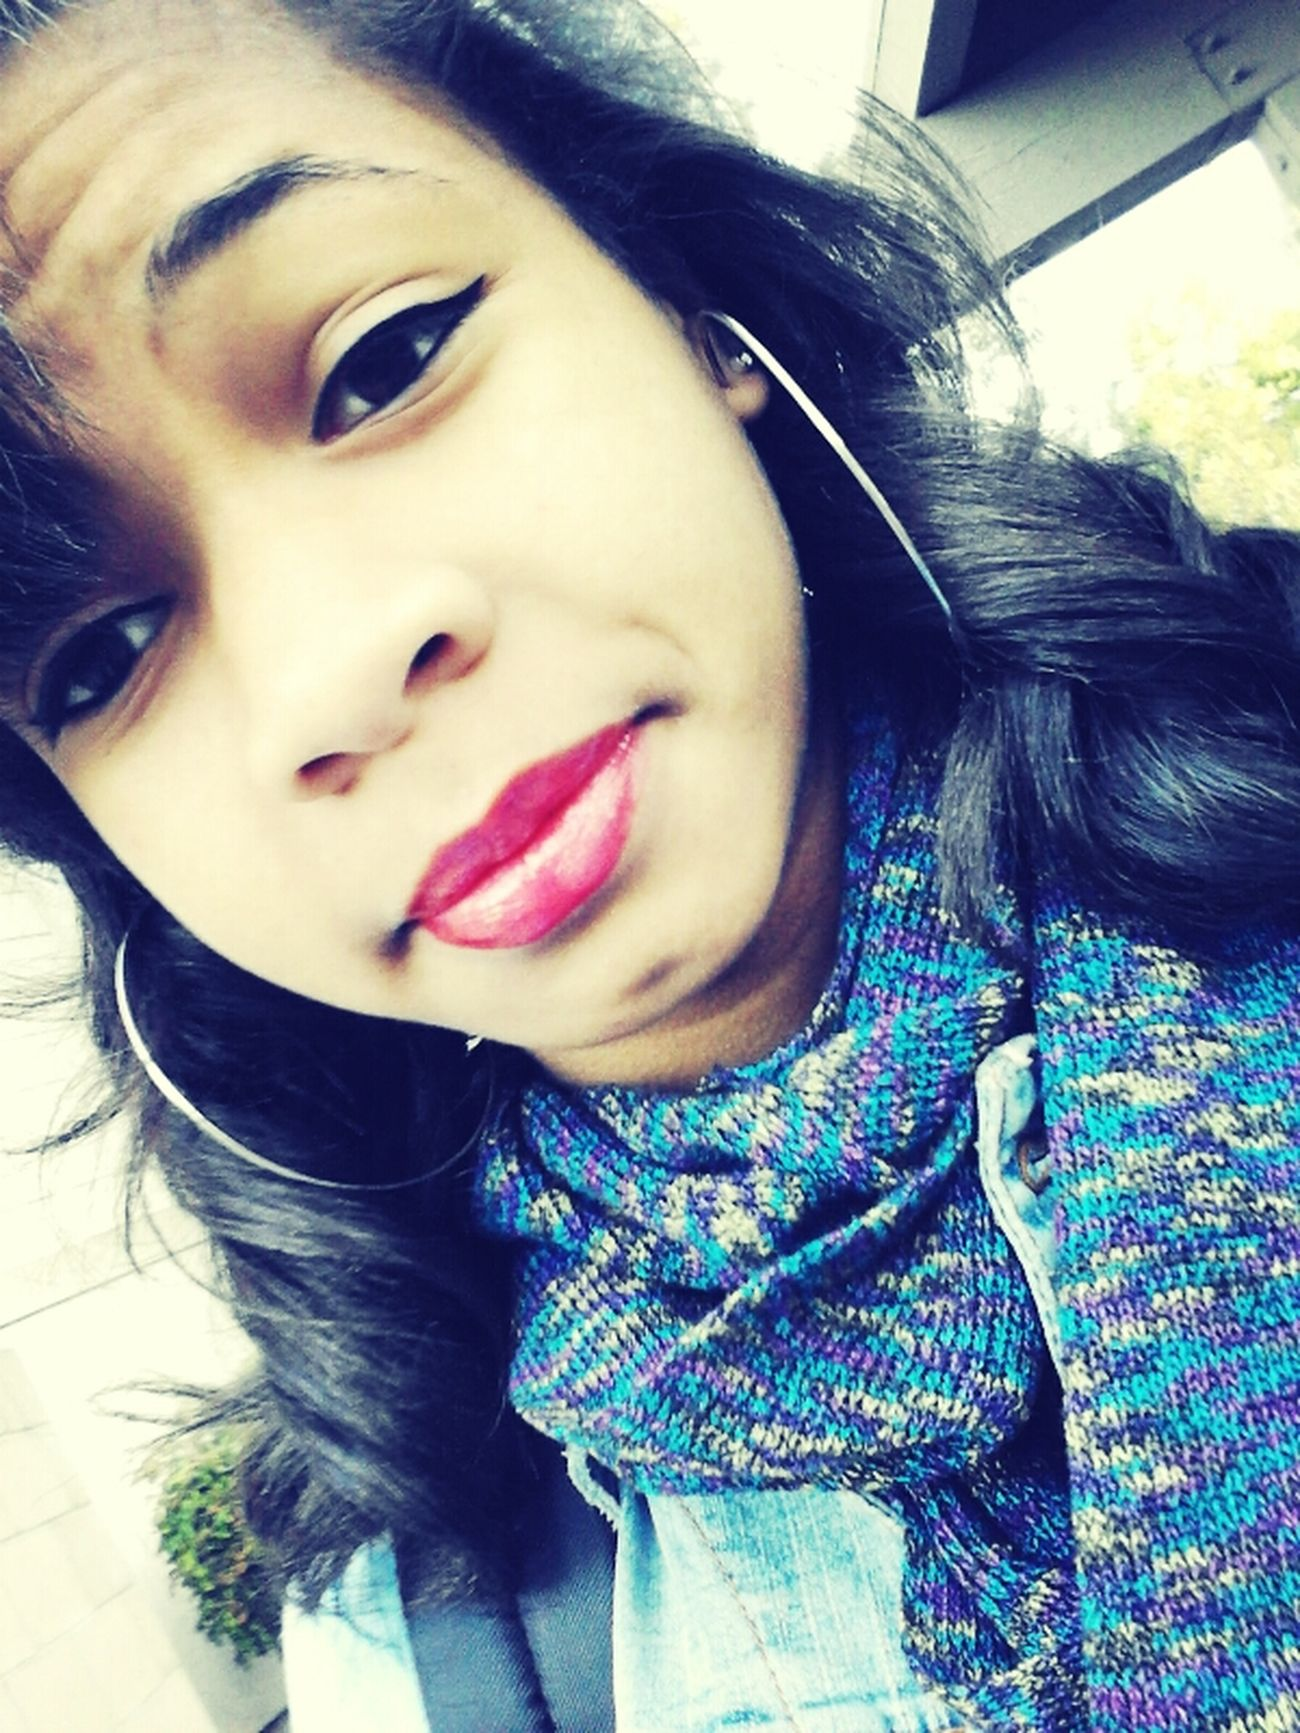 Omw To School(: